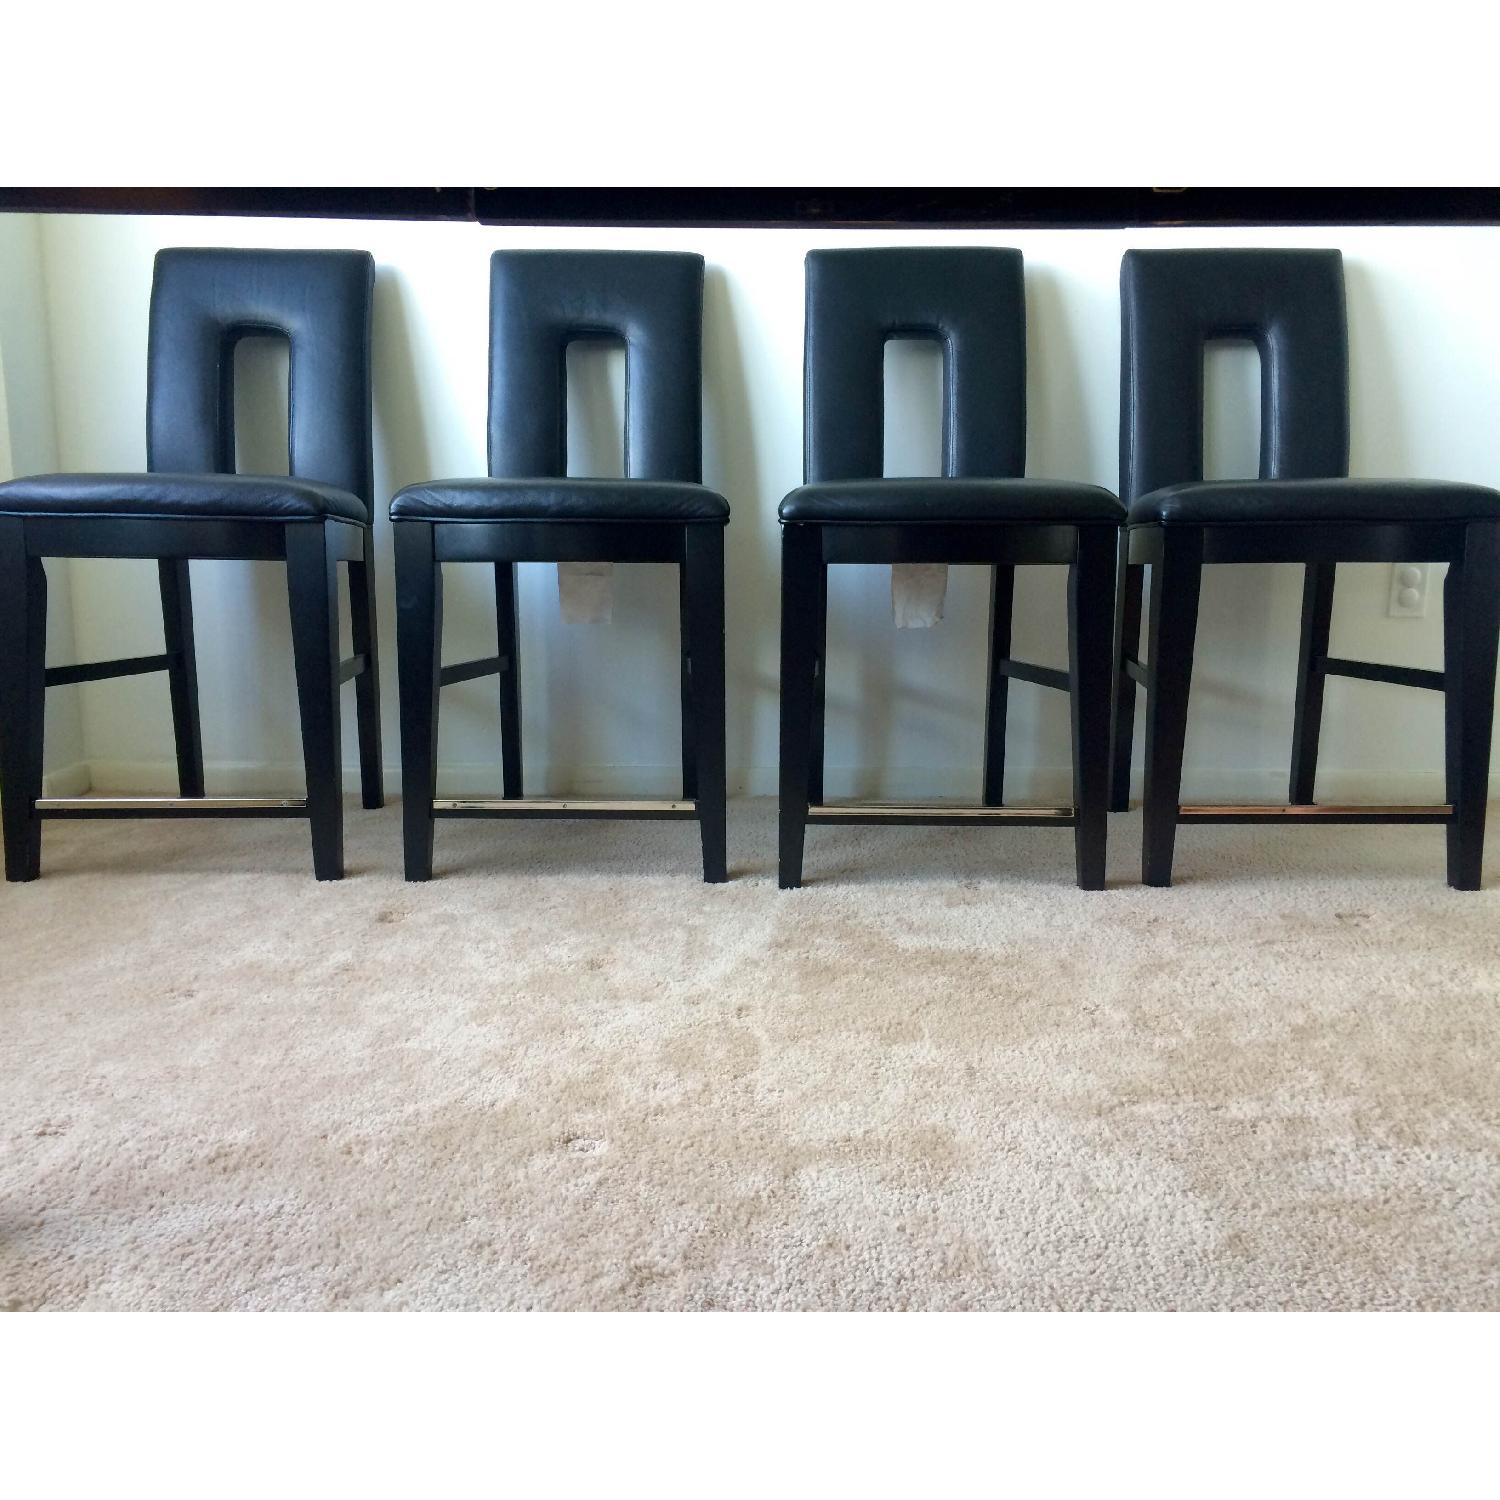 Broyhill Italian Leather Counter-Height Chairs - image-6